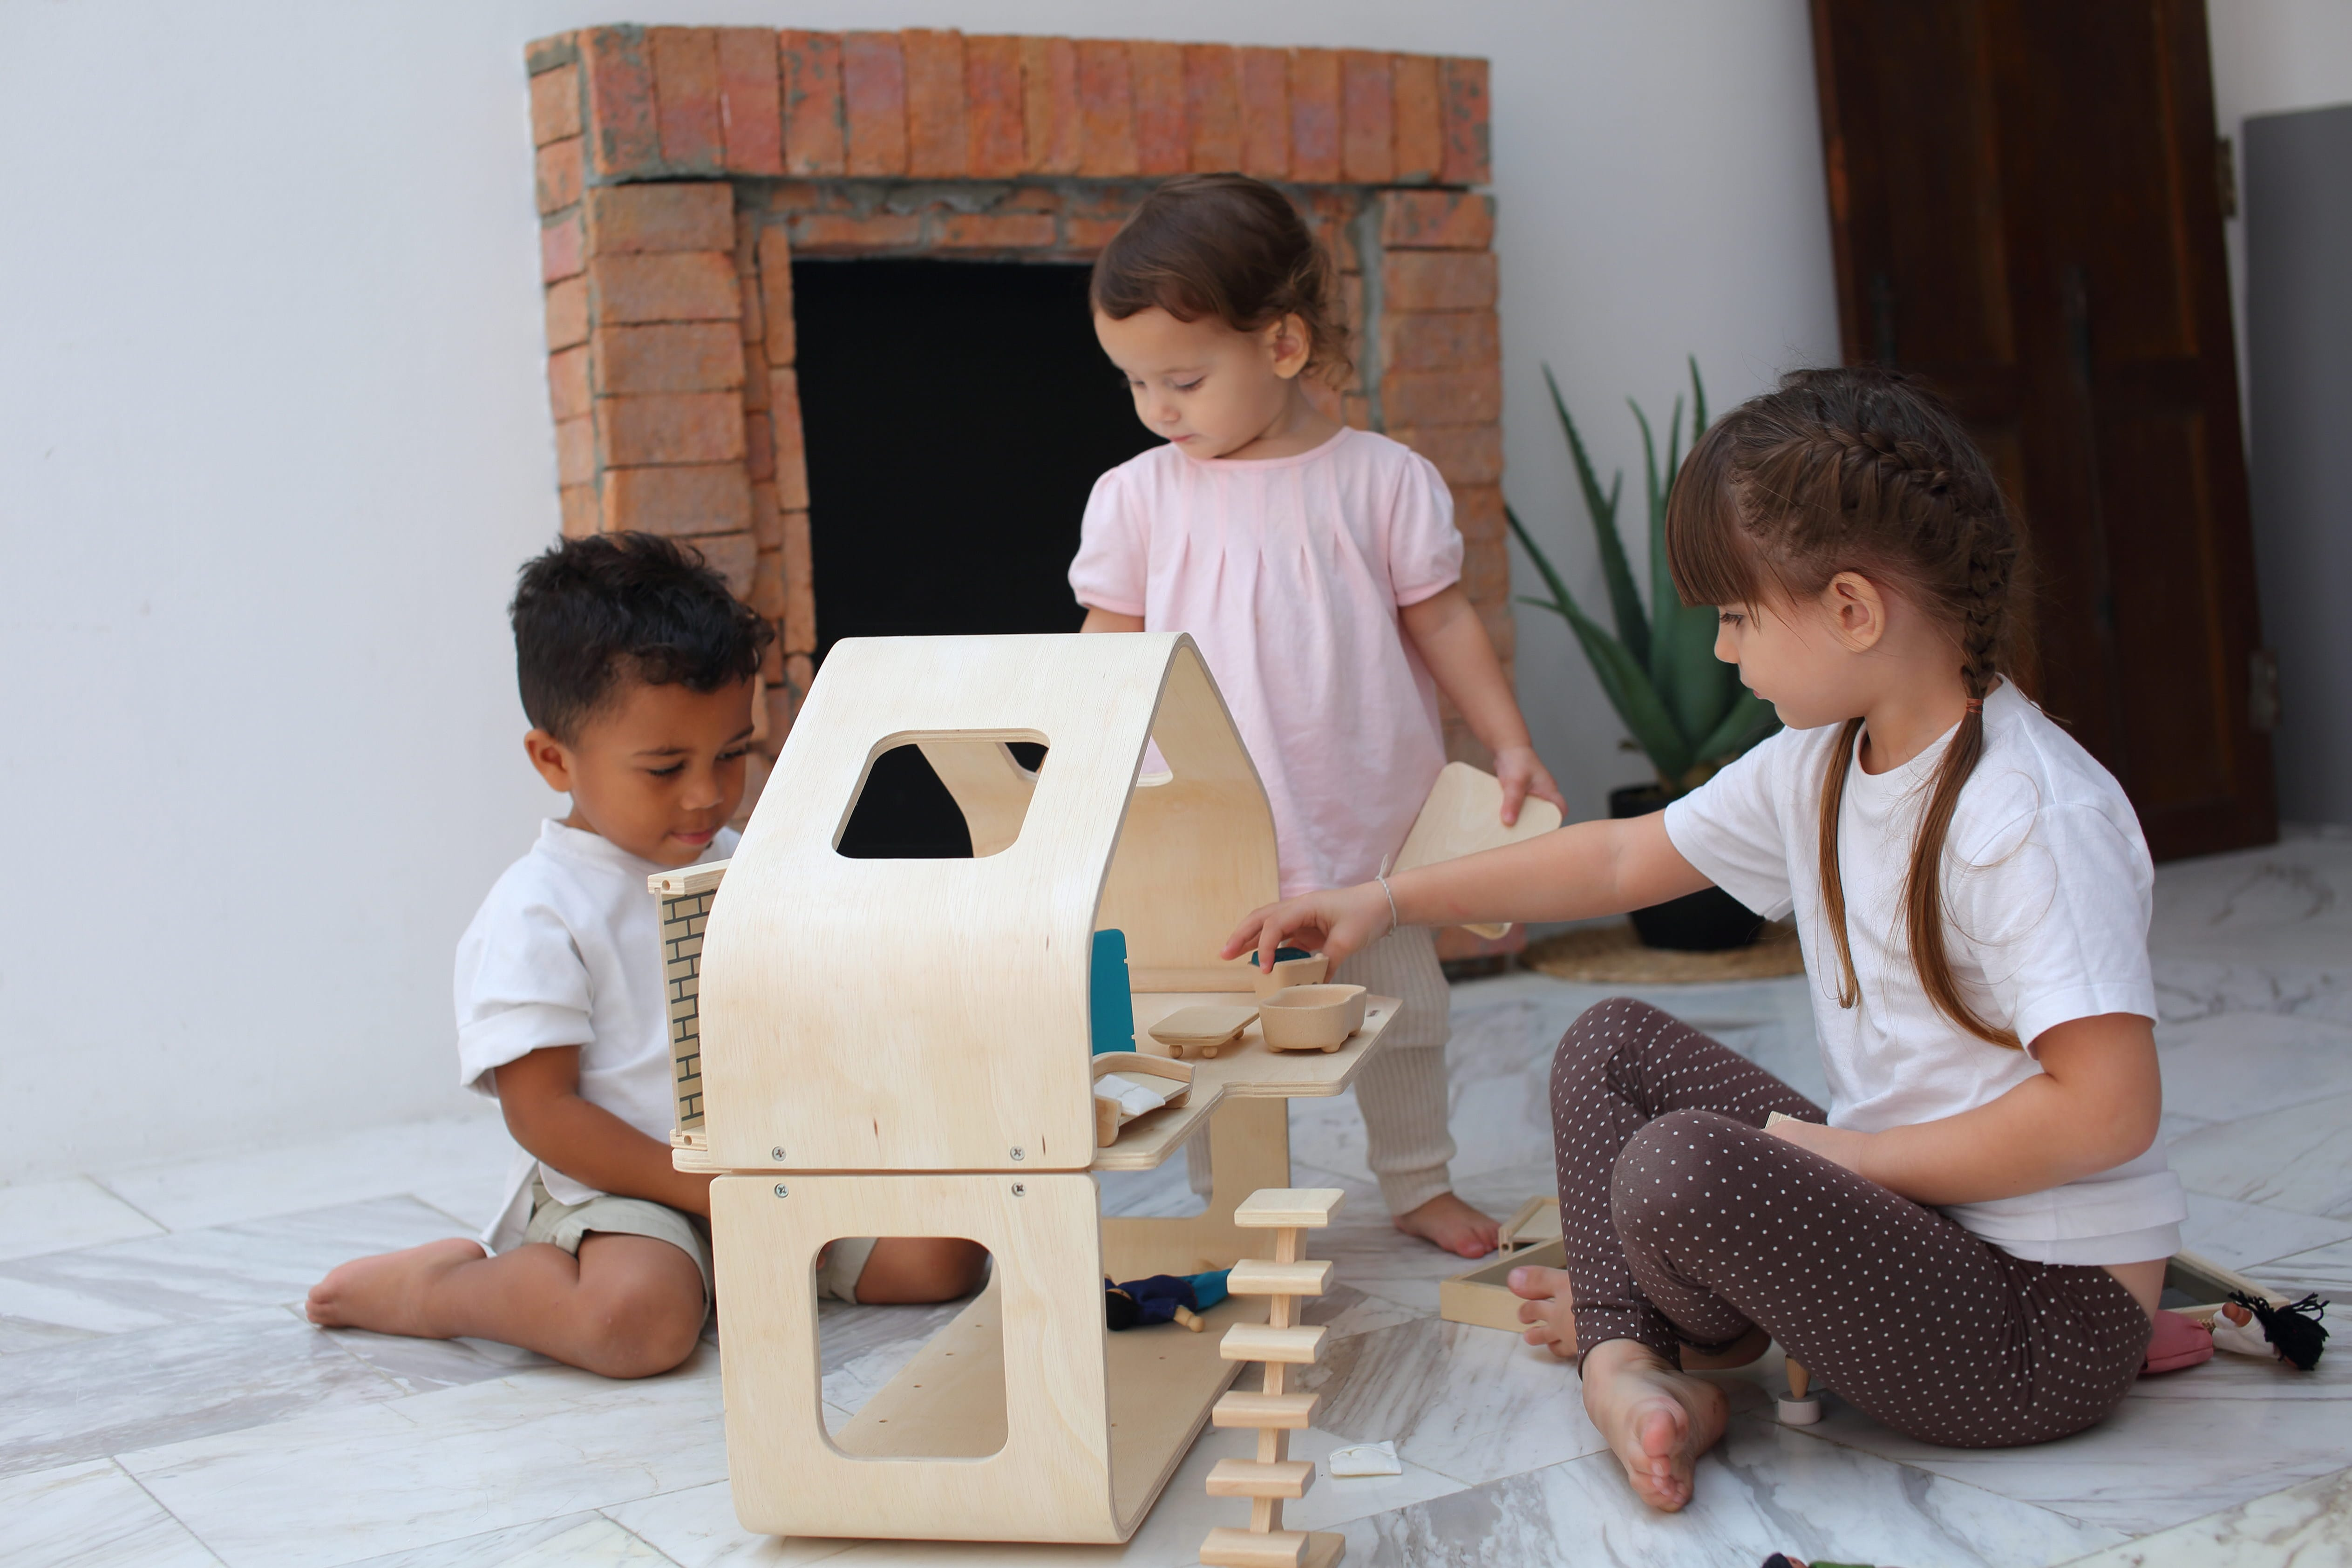 7122_PlanToys_CONTEMPORARY_DOLLHOUSE_Pretend_Play_Imagination_Coordination_Language_and_Communications_Social_Fine_Motor_3yrs_Wooden_toys_Education_toys_Safety_Toys_Non-toxic_1.jpg